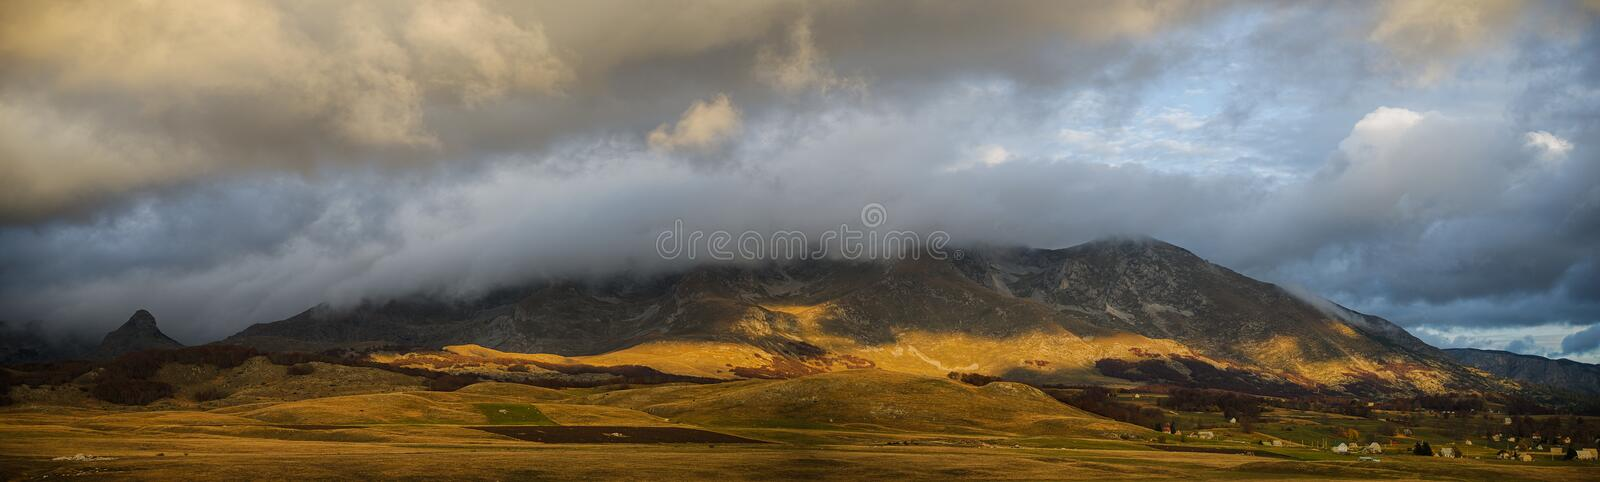 Mountain Under the Clouds stock image